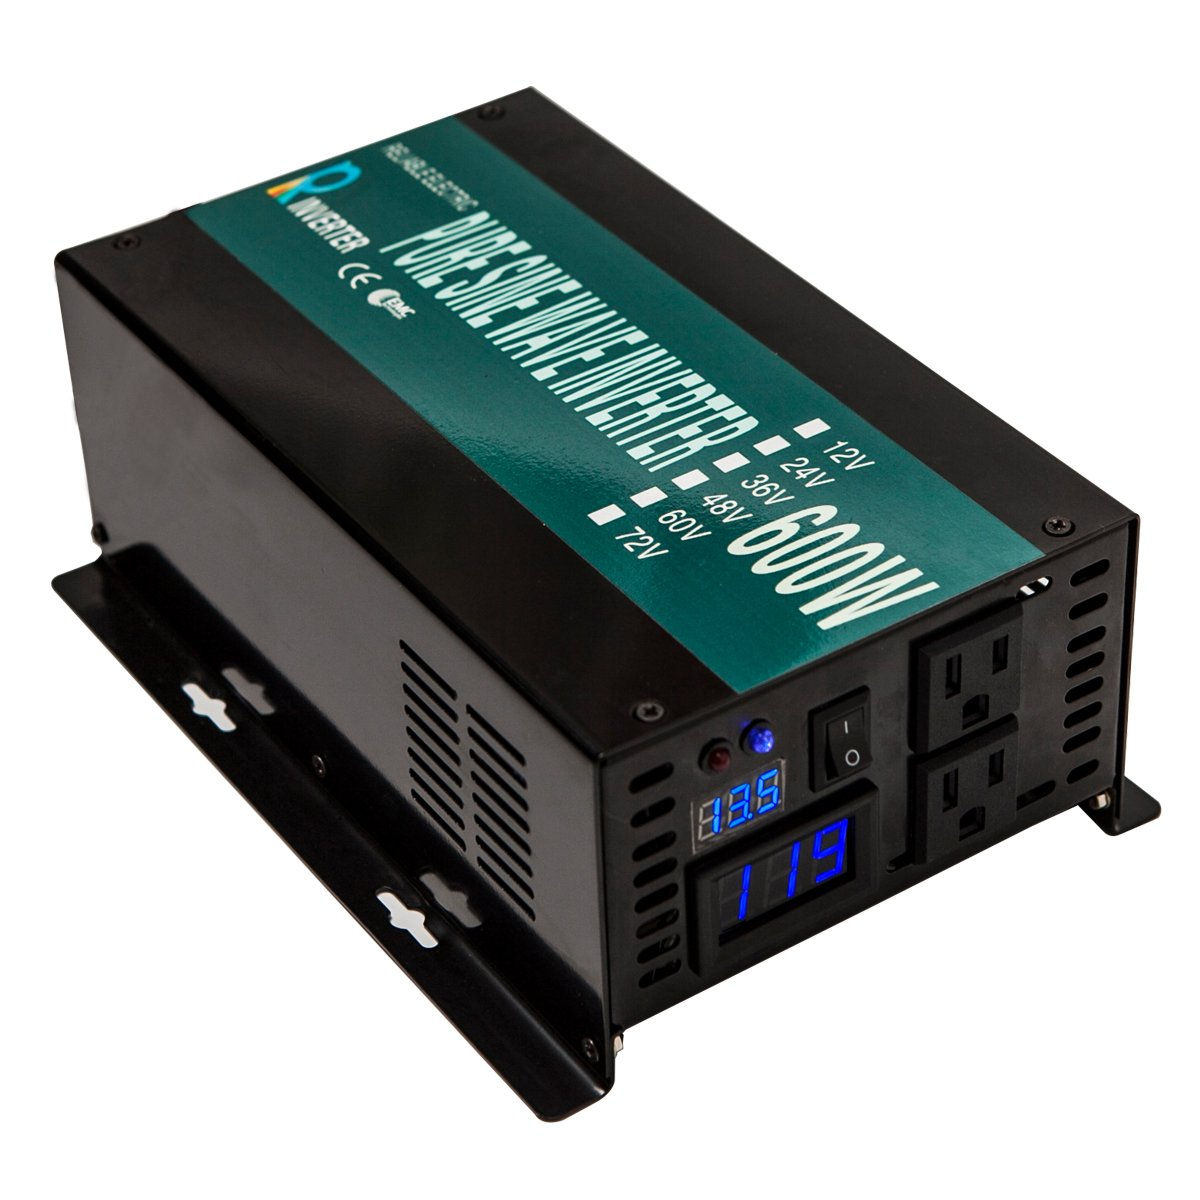 WZRELB Reliable Design Top Quality Pure Sine Wave Inverter DC To AC 24VDC Input 120VAC Output Off Grid